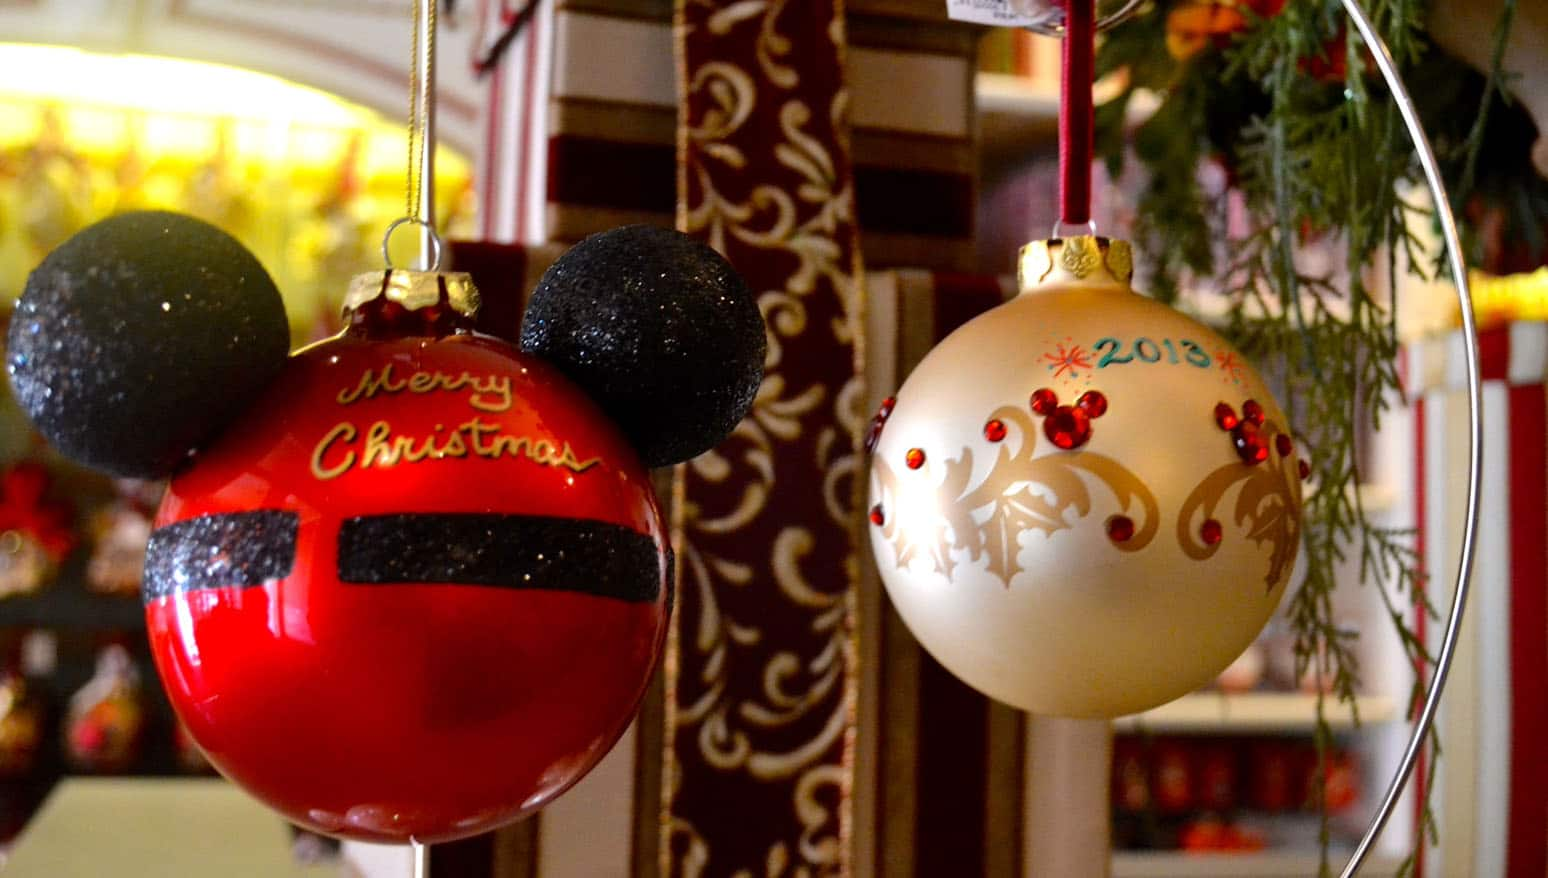 Adding A Personal Touch To The Holidays At The Disneyland Resort